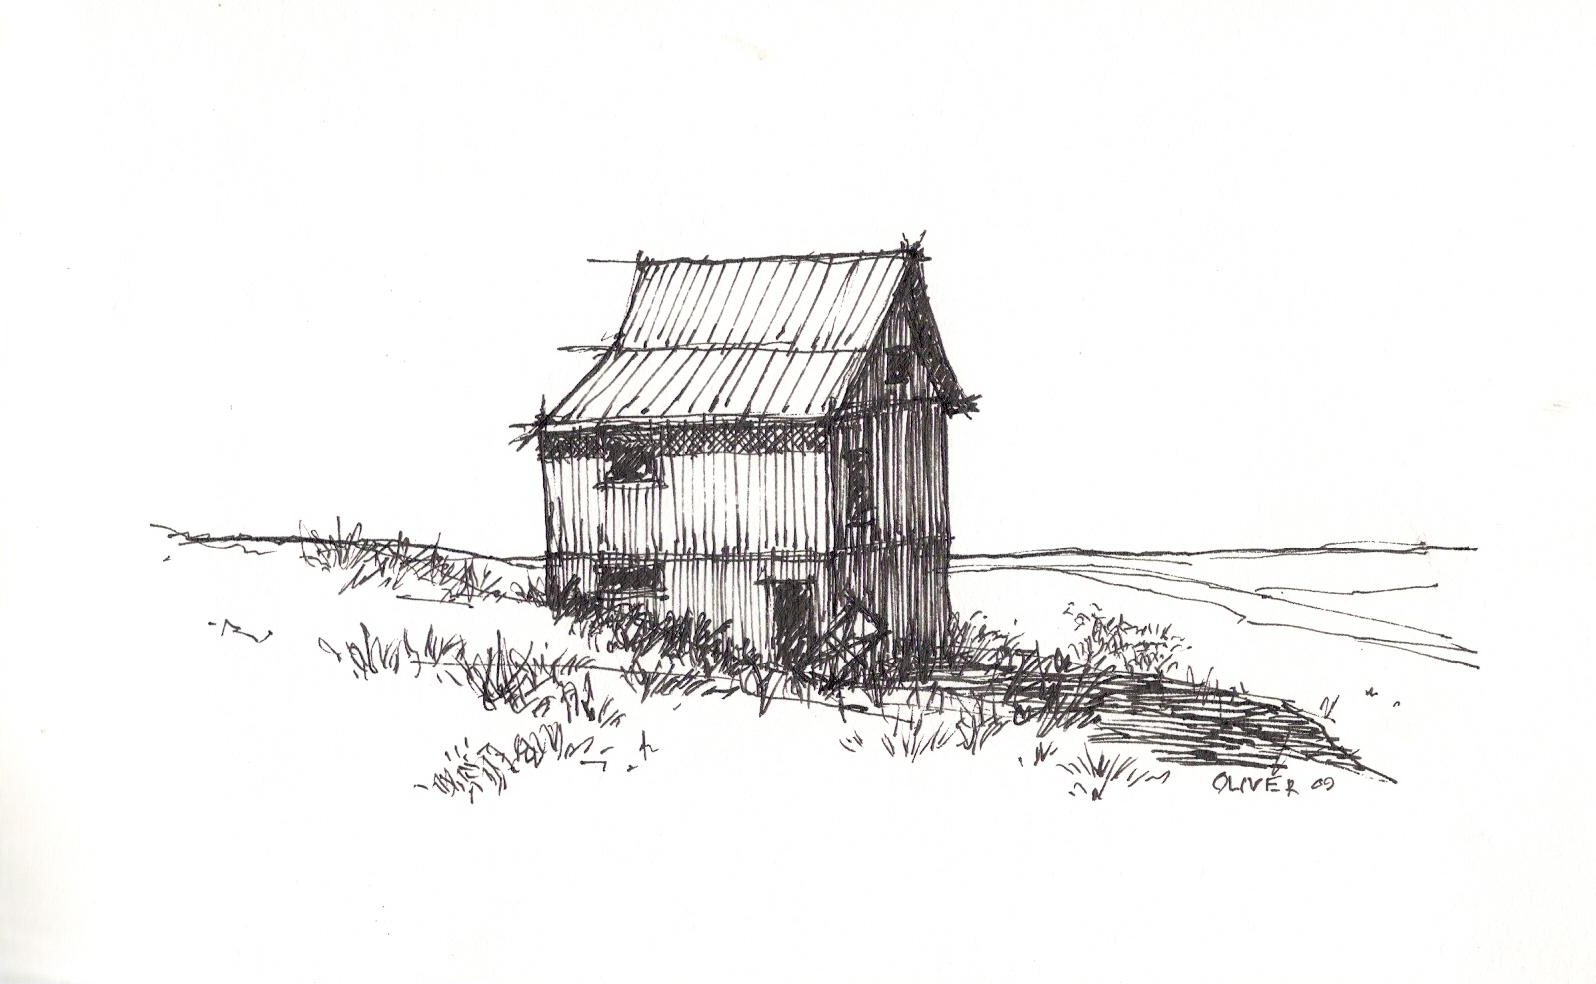 Tim Oliver 39 S Sketchbook My Take On A Barn From Freehand